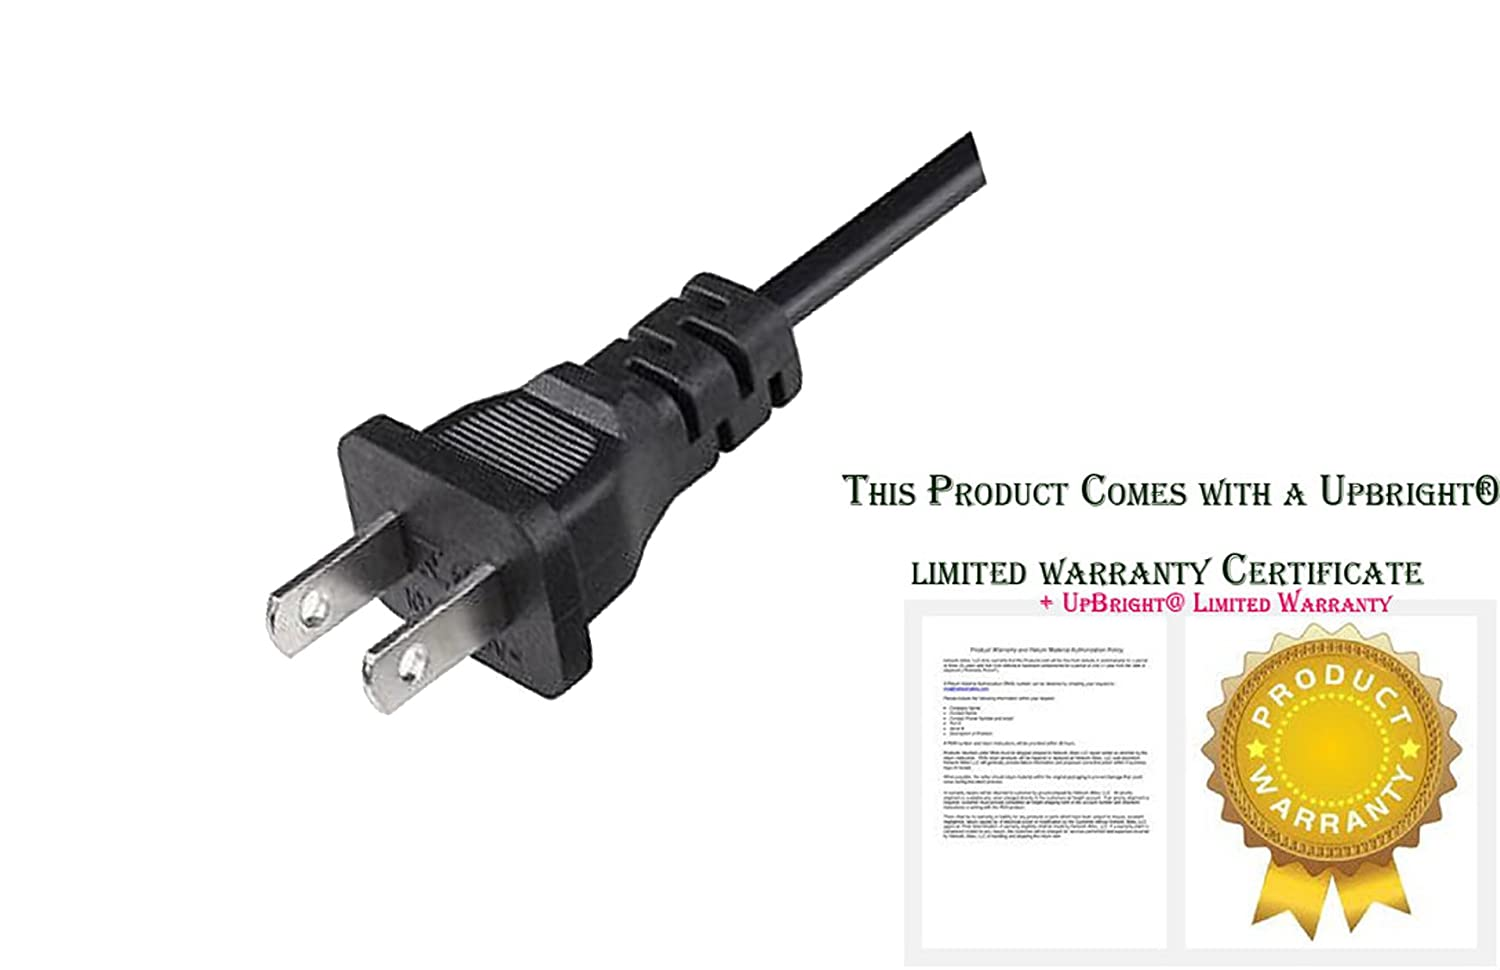 Upbright New Ac In Power Cord Cable Plug Lead For Singer Wiring Sew Mate Sewing Machine Series 5400 5500 5625 6160 120 125 130 135 140 145 150